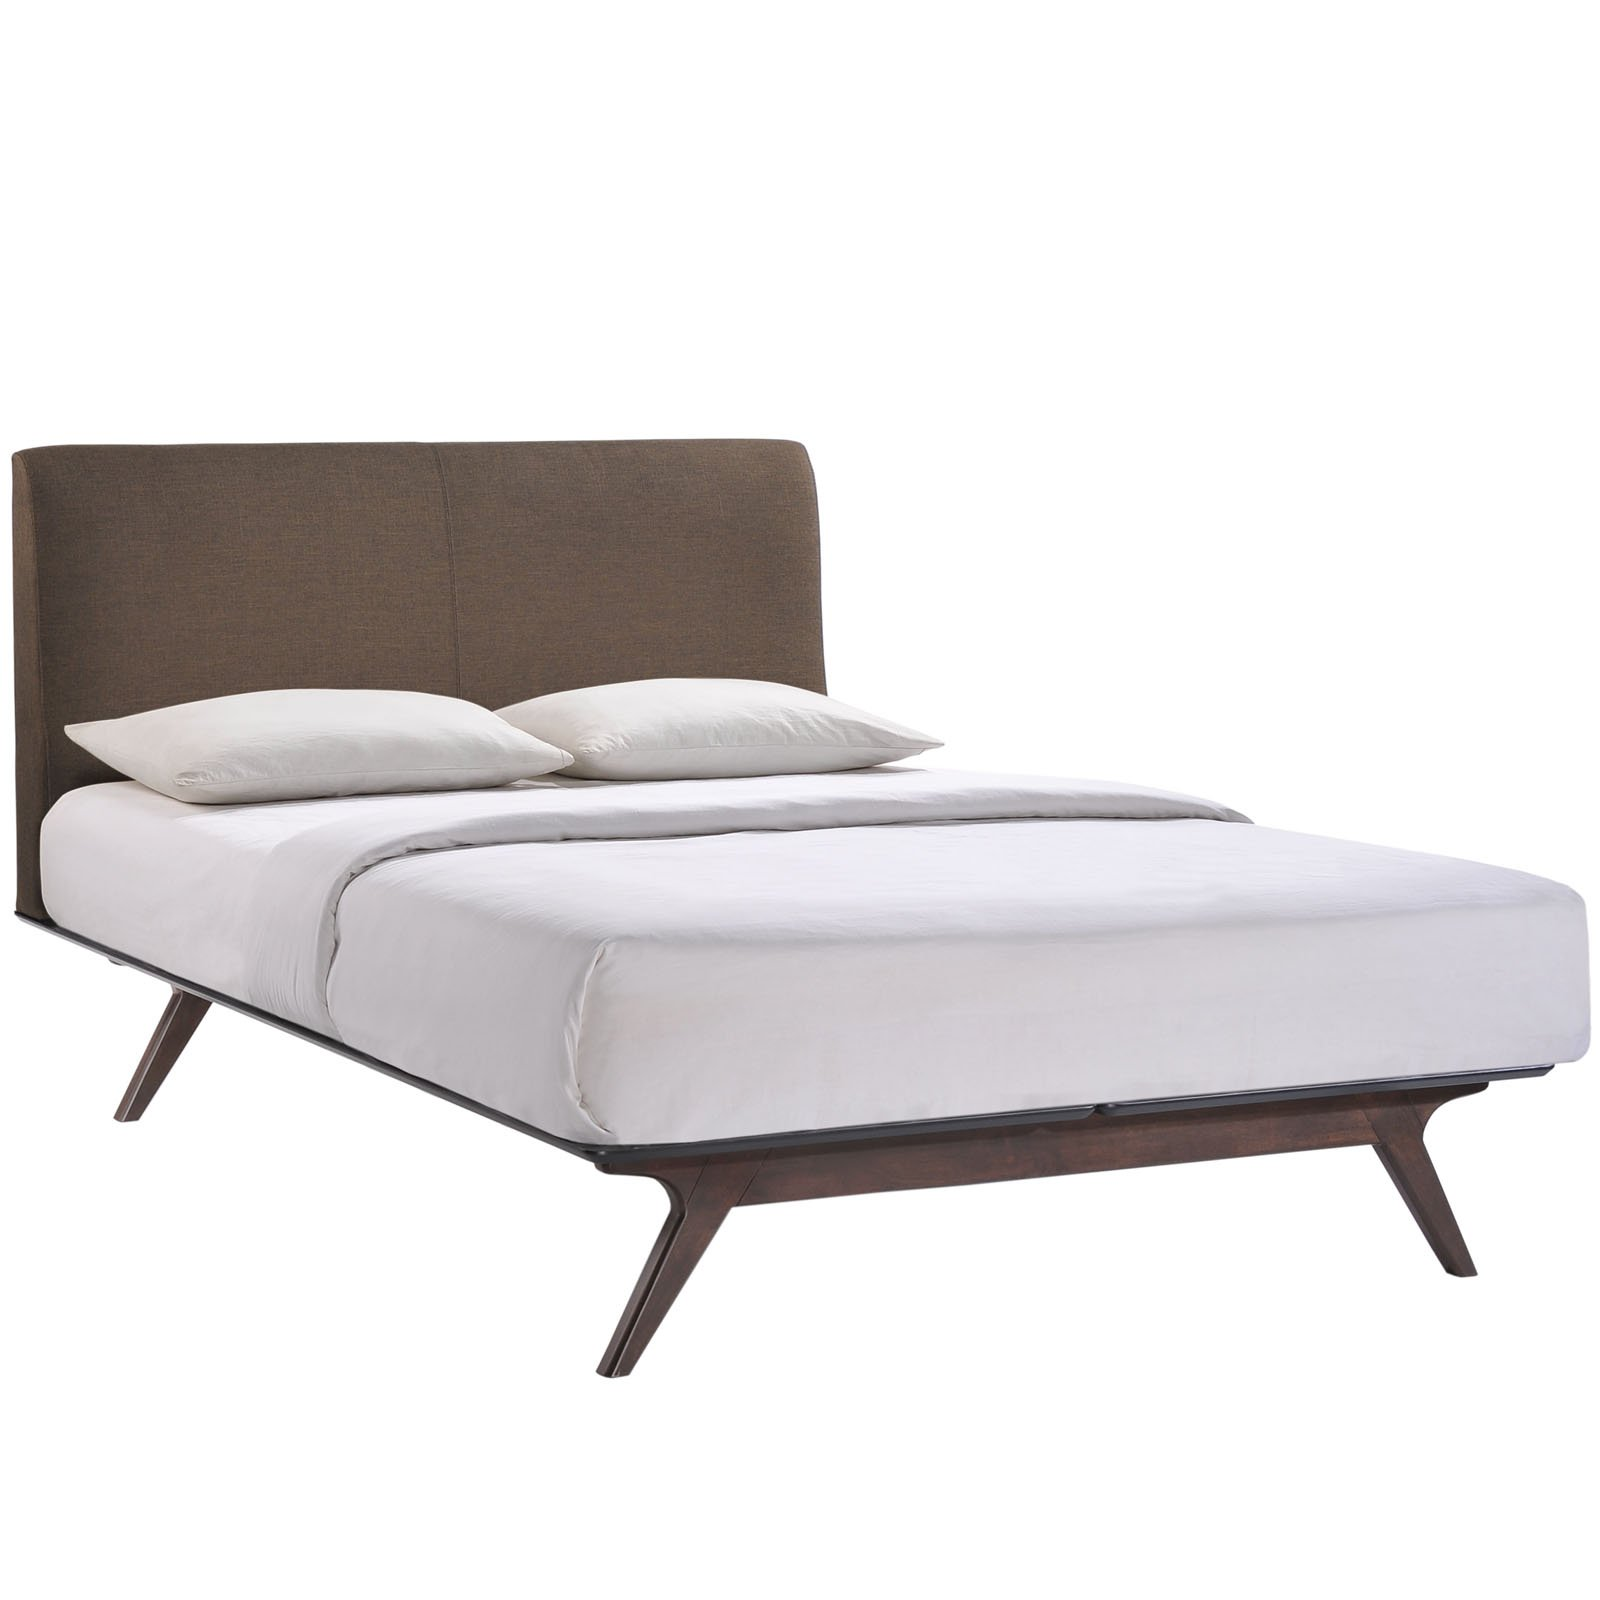 Modway Tracy Mid-Century Modern Wood Platform Queen Size Bed in Cappuccino Brown by Modway